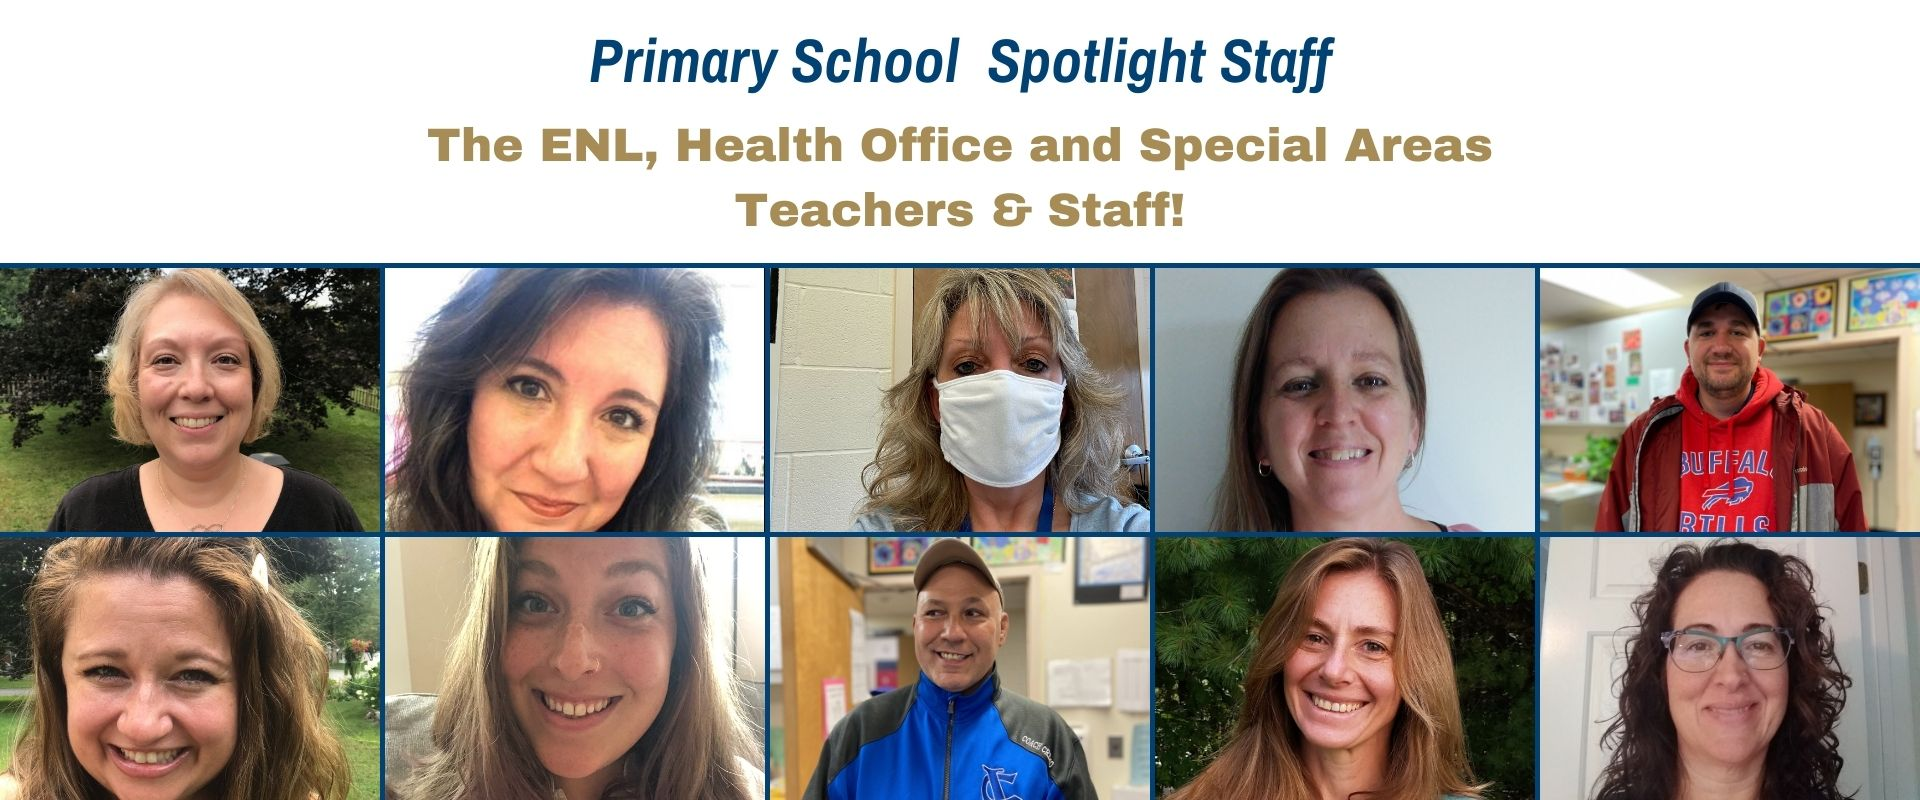 Primary School Spotlight Staff for March 2021